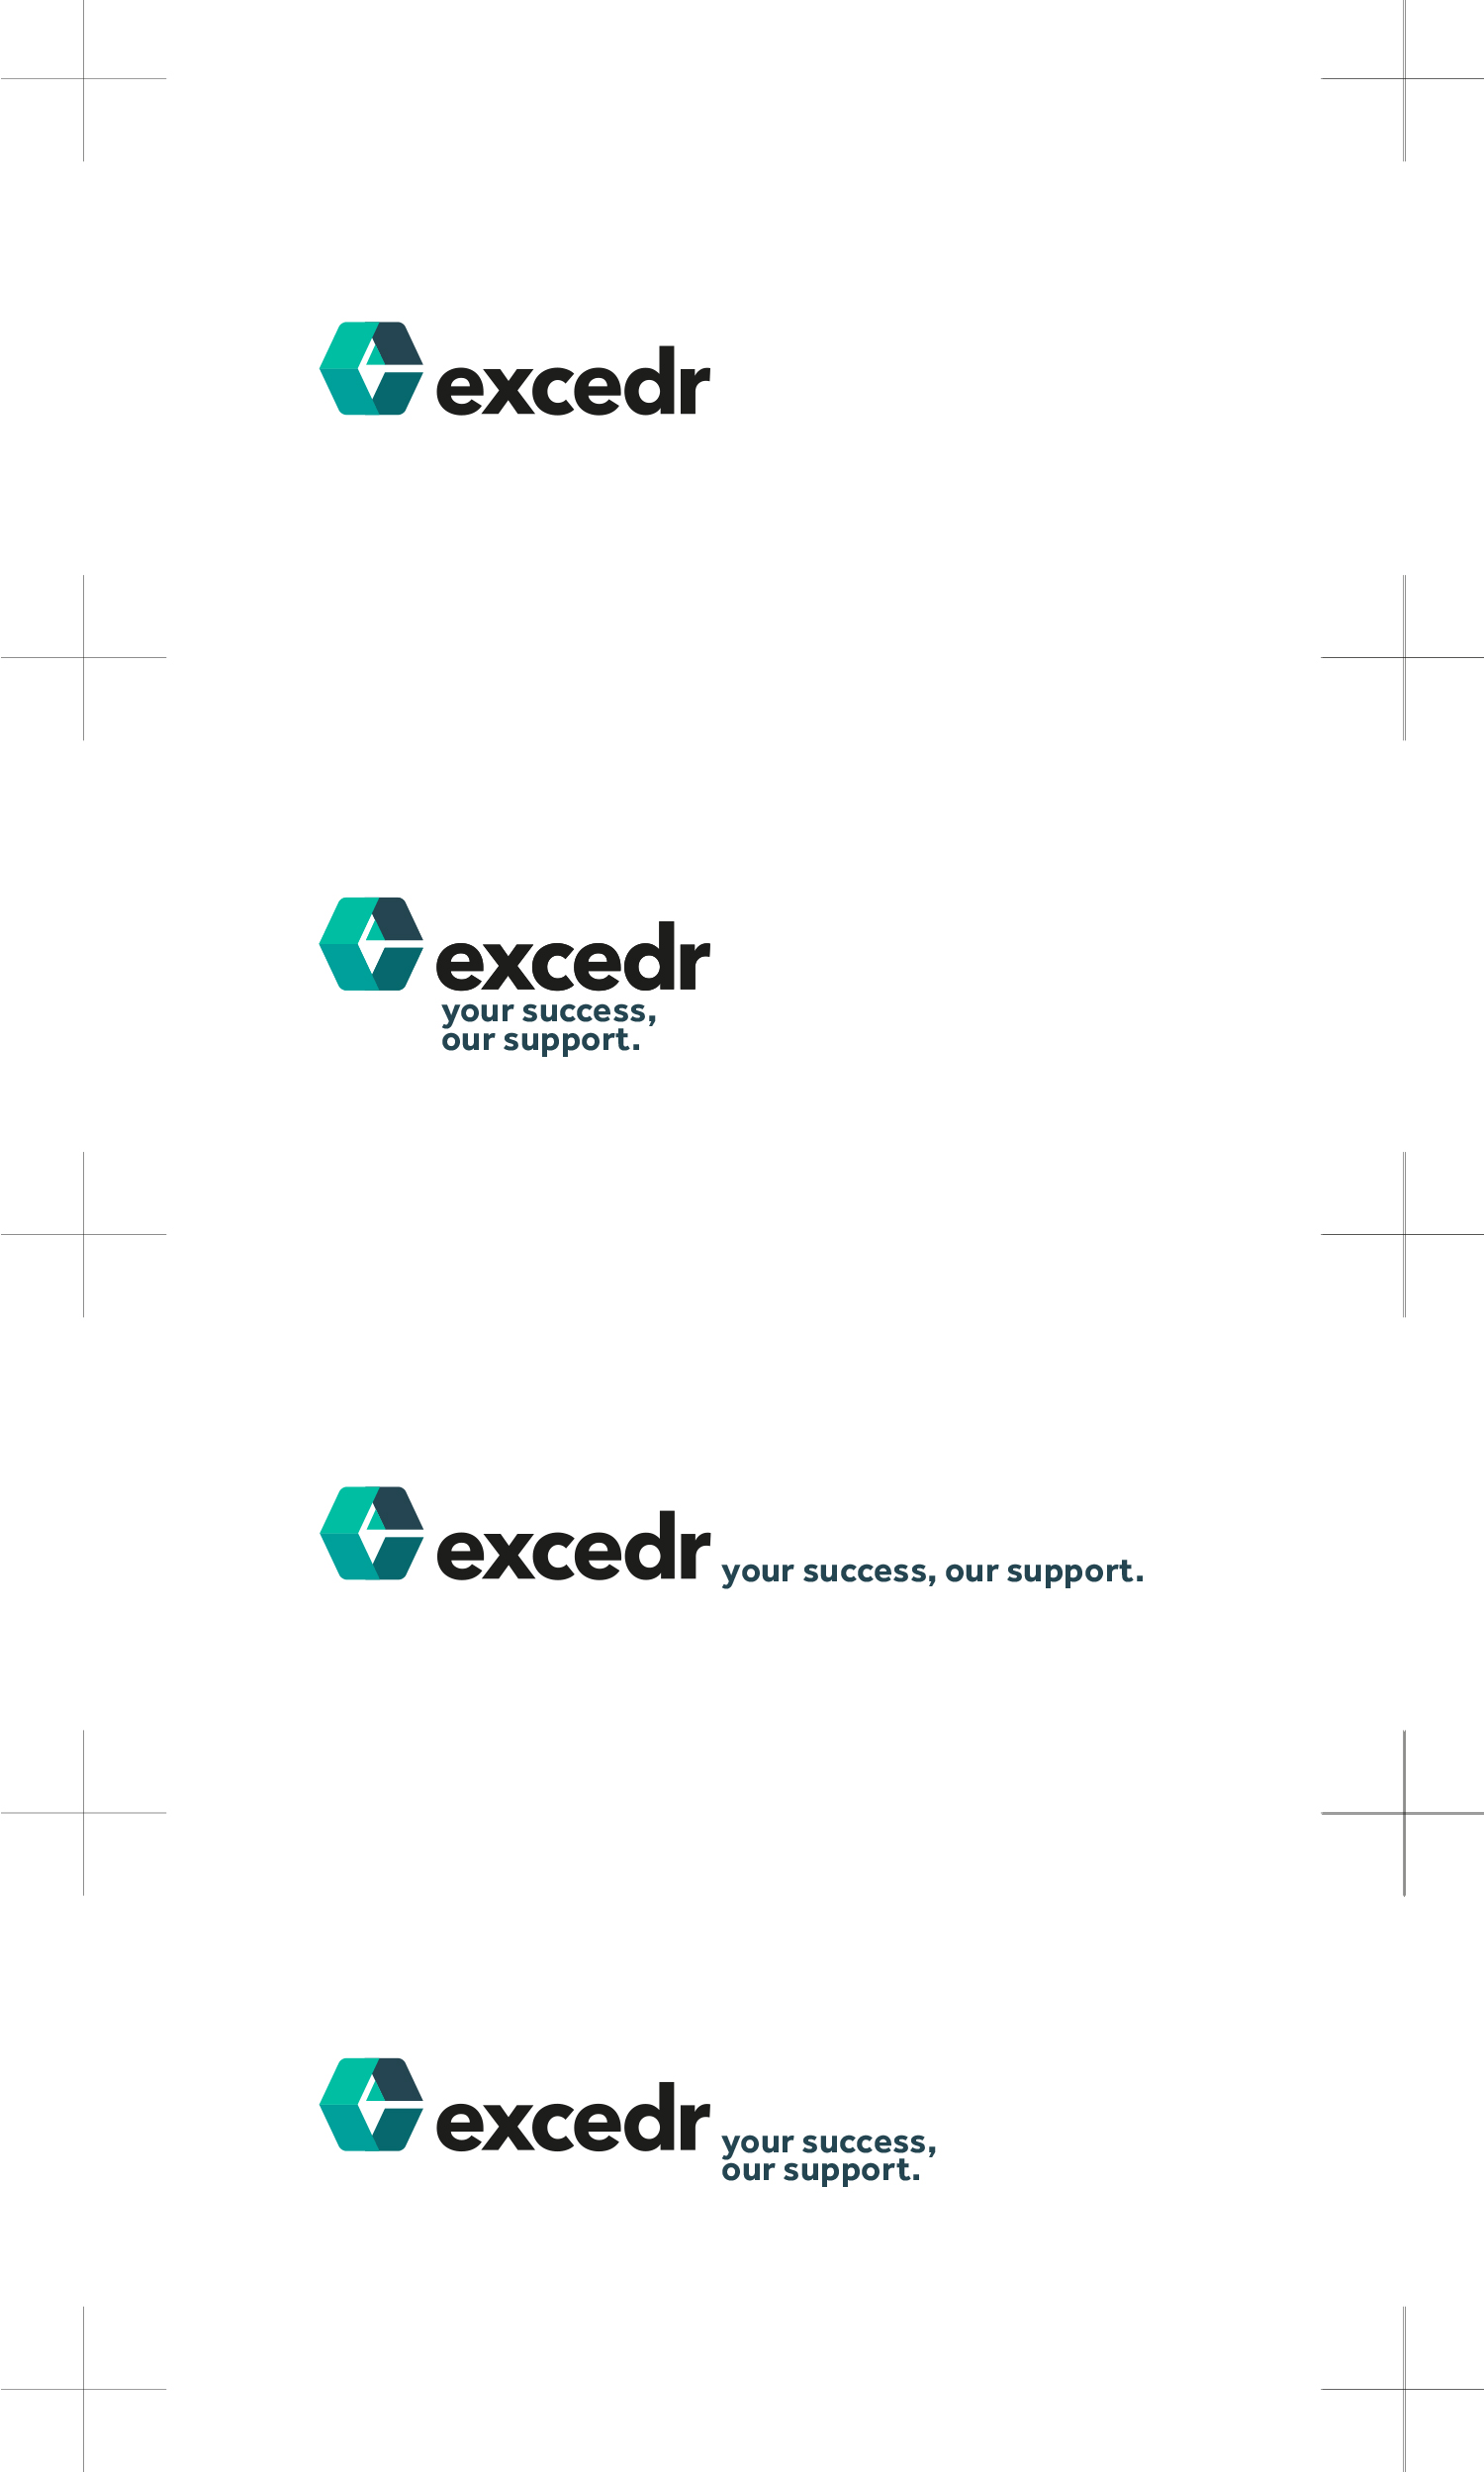 Excedr logo lock-ups Graham Smith